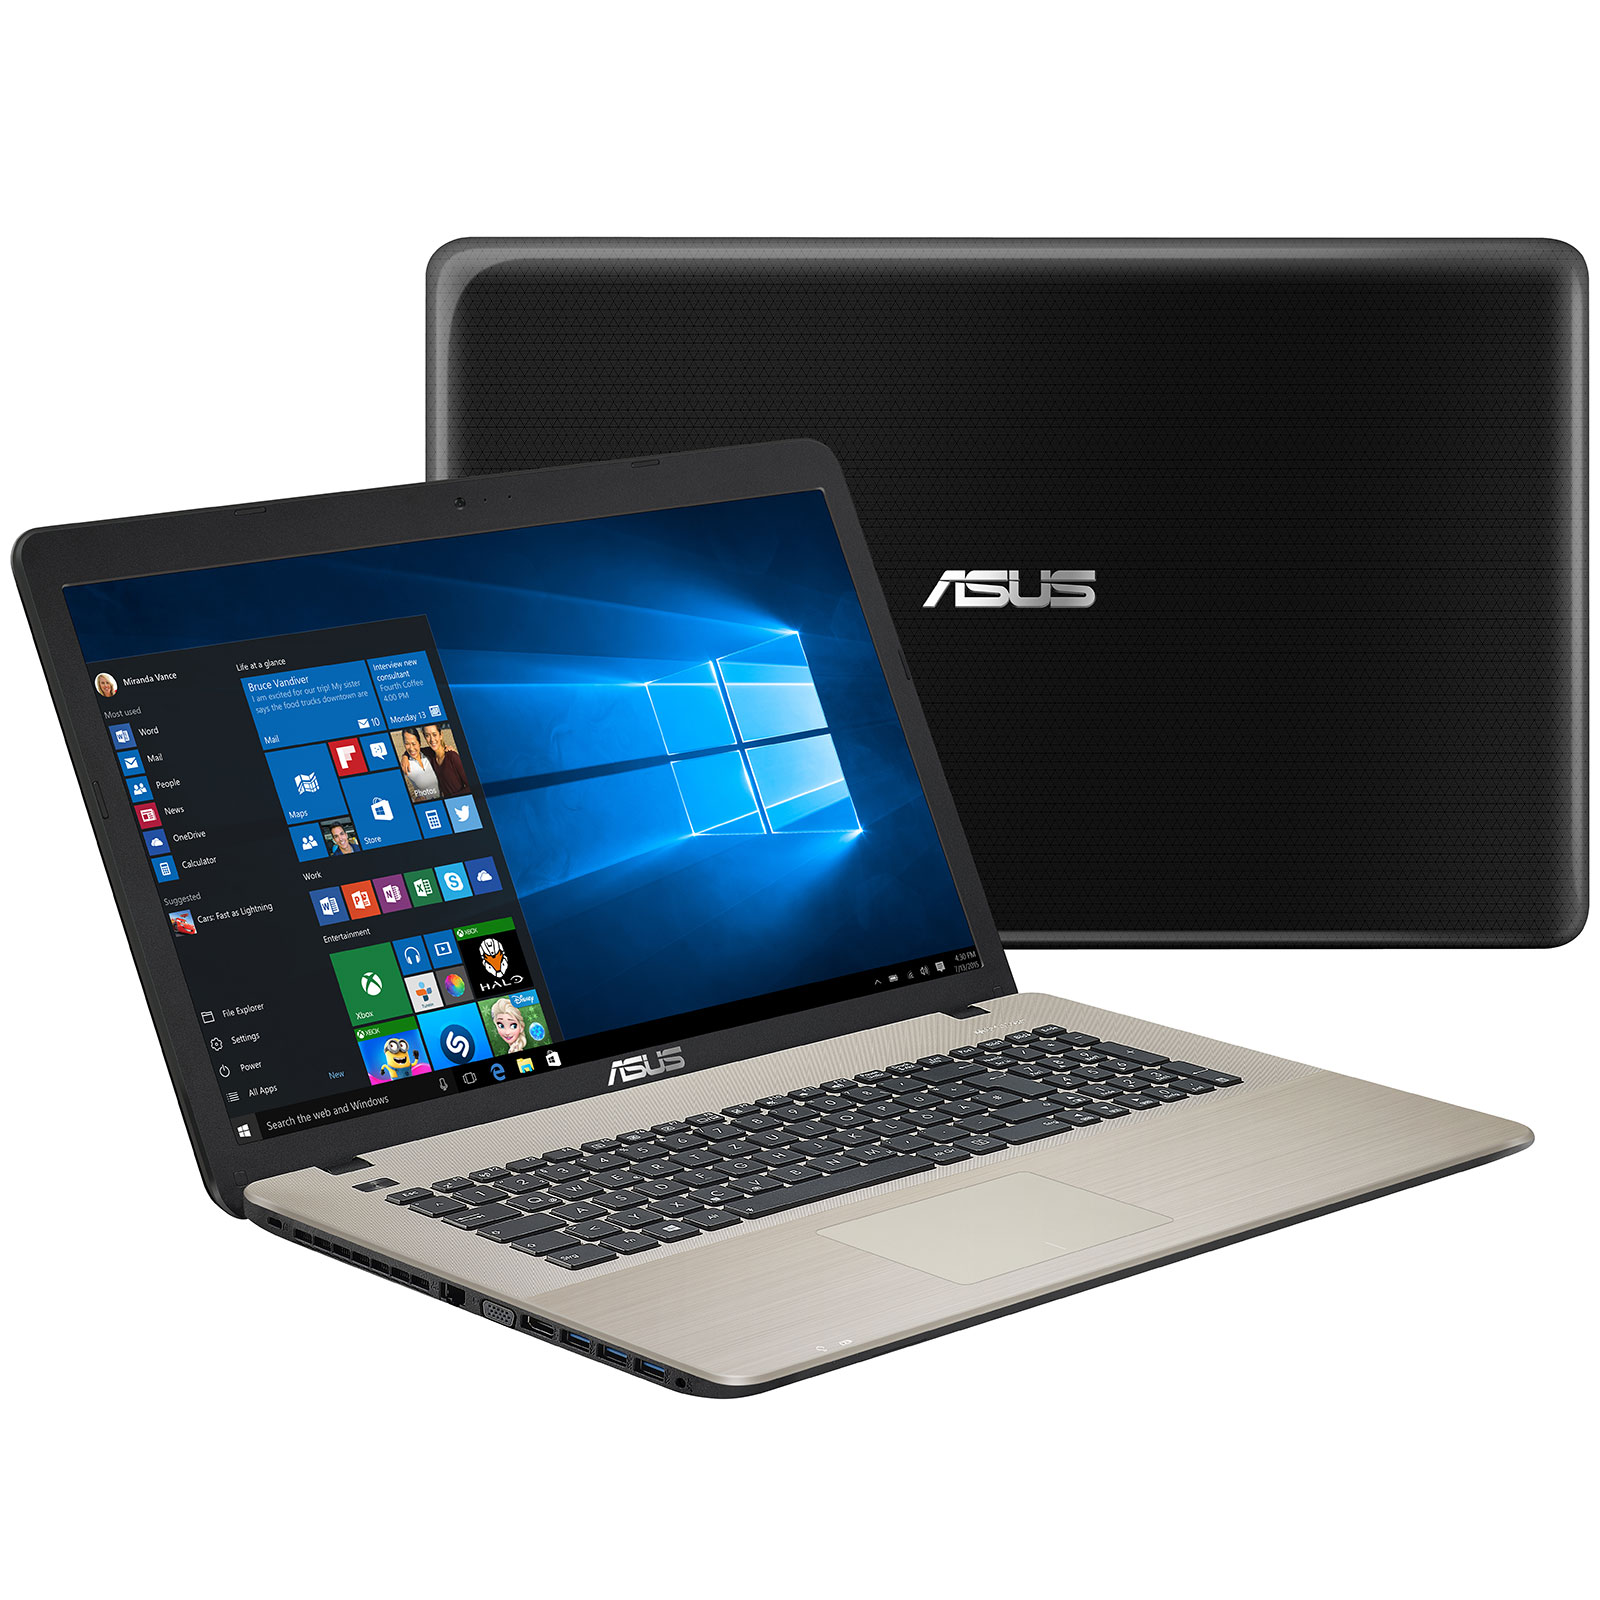 asus x752lj ty358t pc portable asus sur. Black Bedroom Furniture Sets. Home Design Ideas